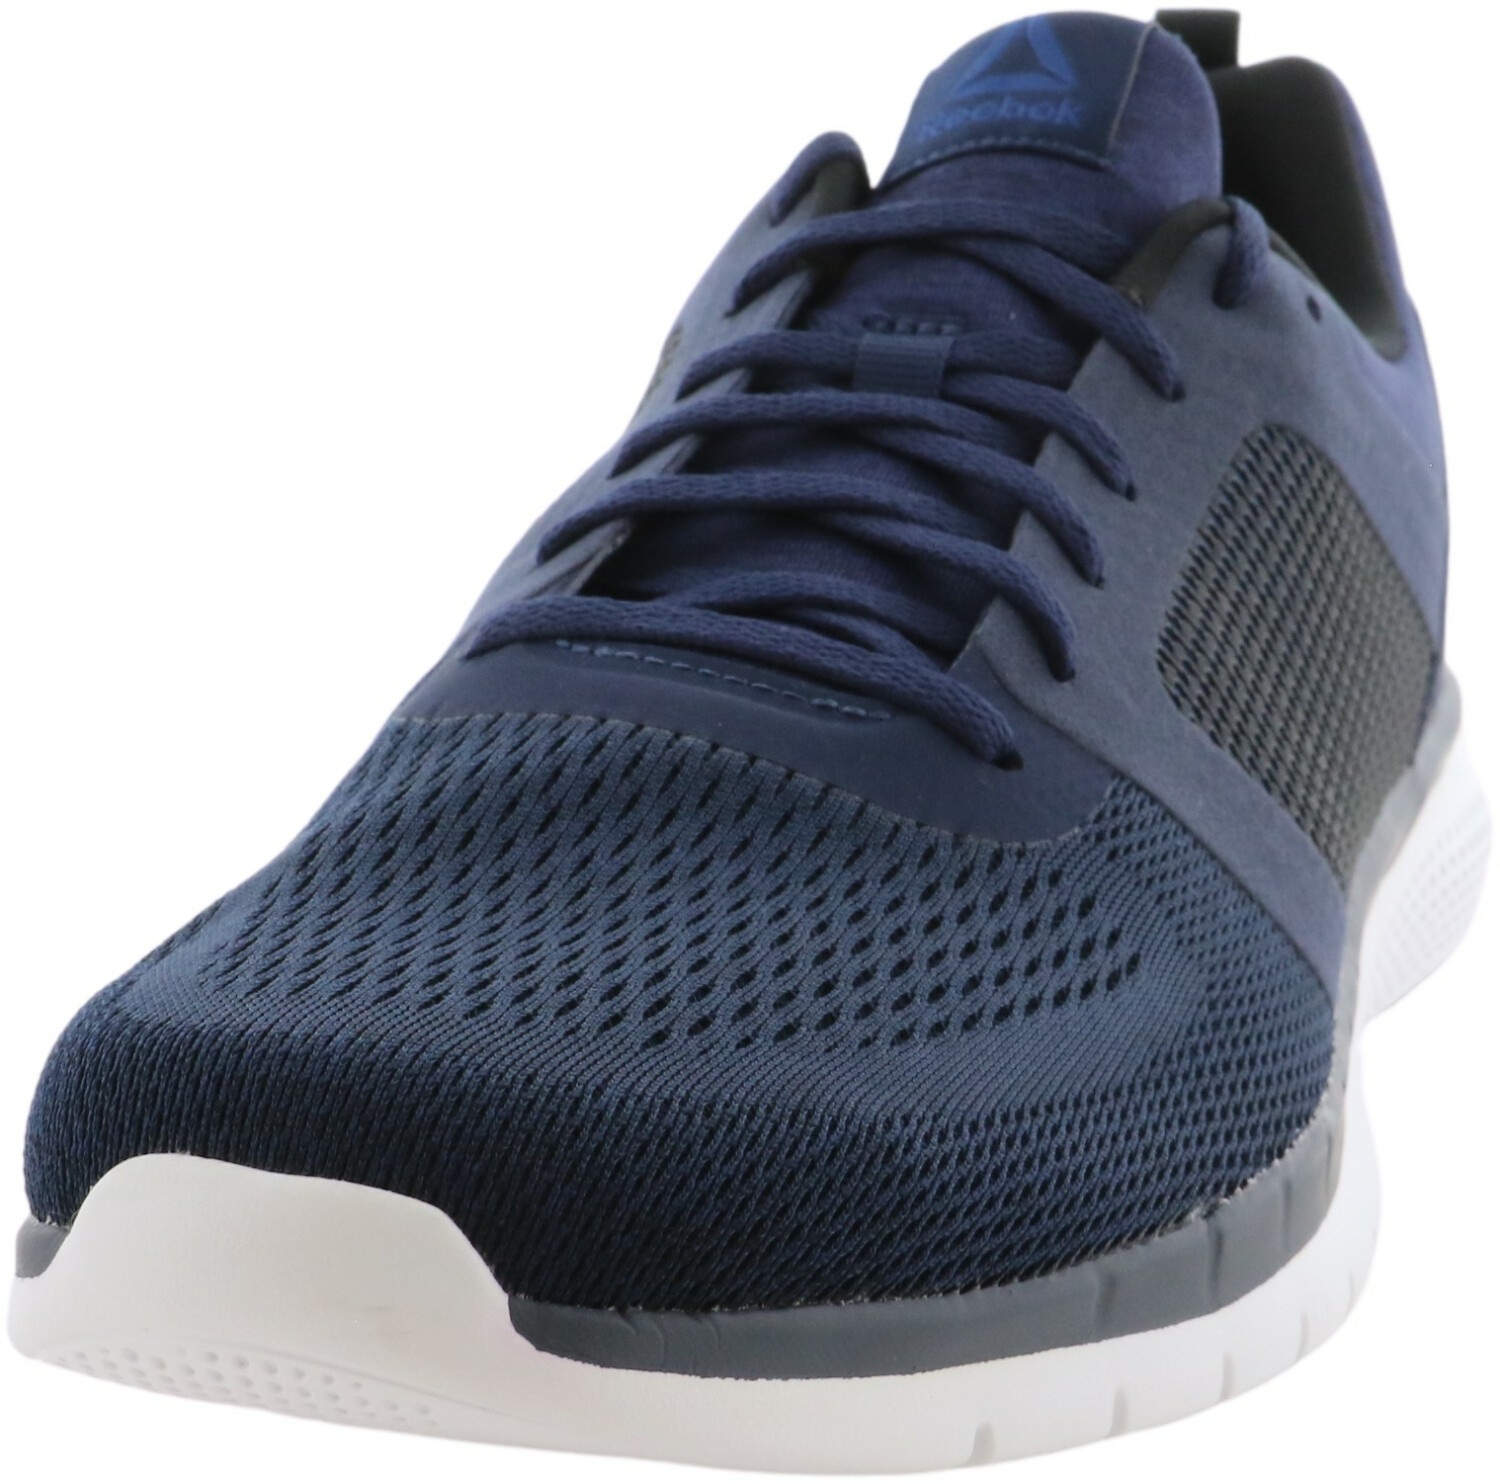 Reebok Men's Pt Prime Run 2.0 Collegiate Navy / Blue Black White Ankle-High Running - 10M